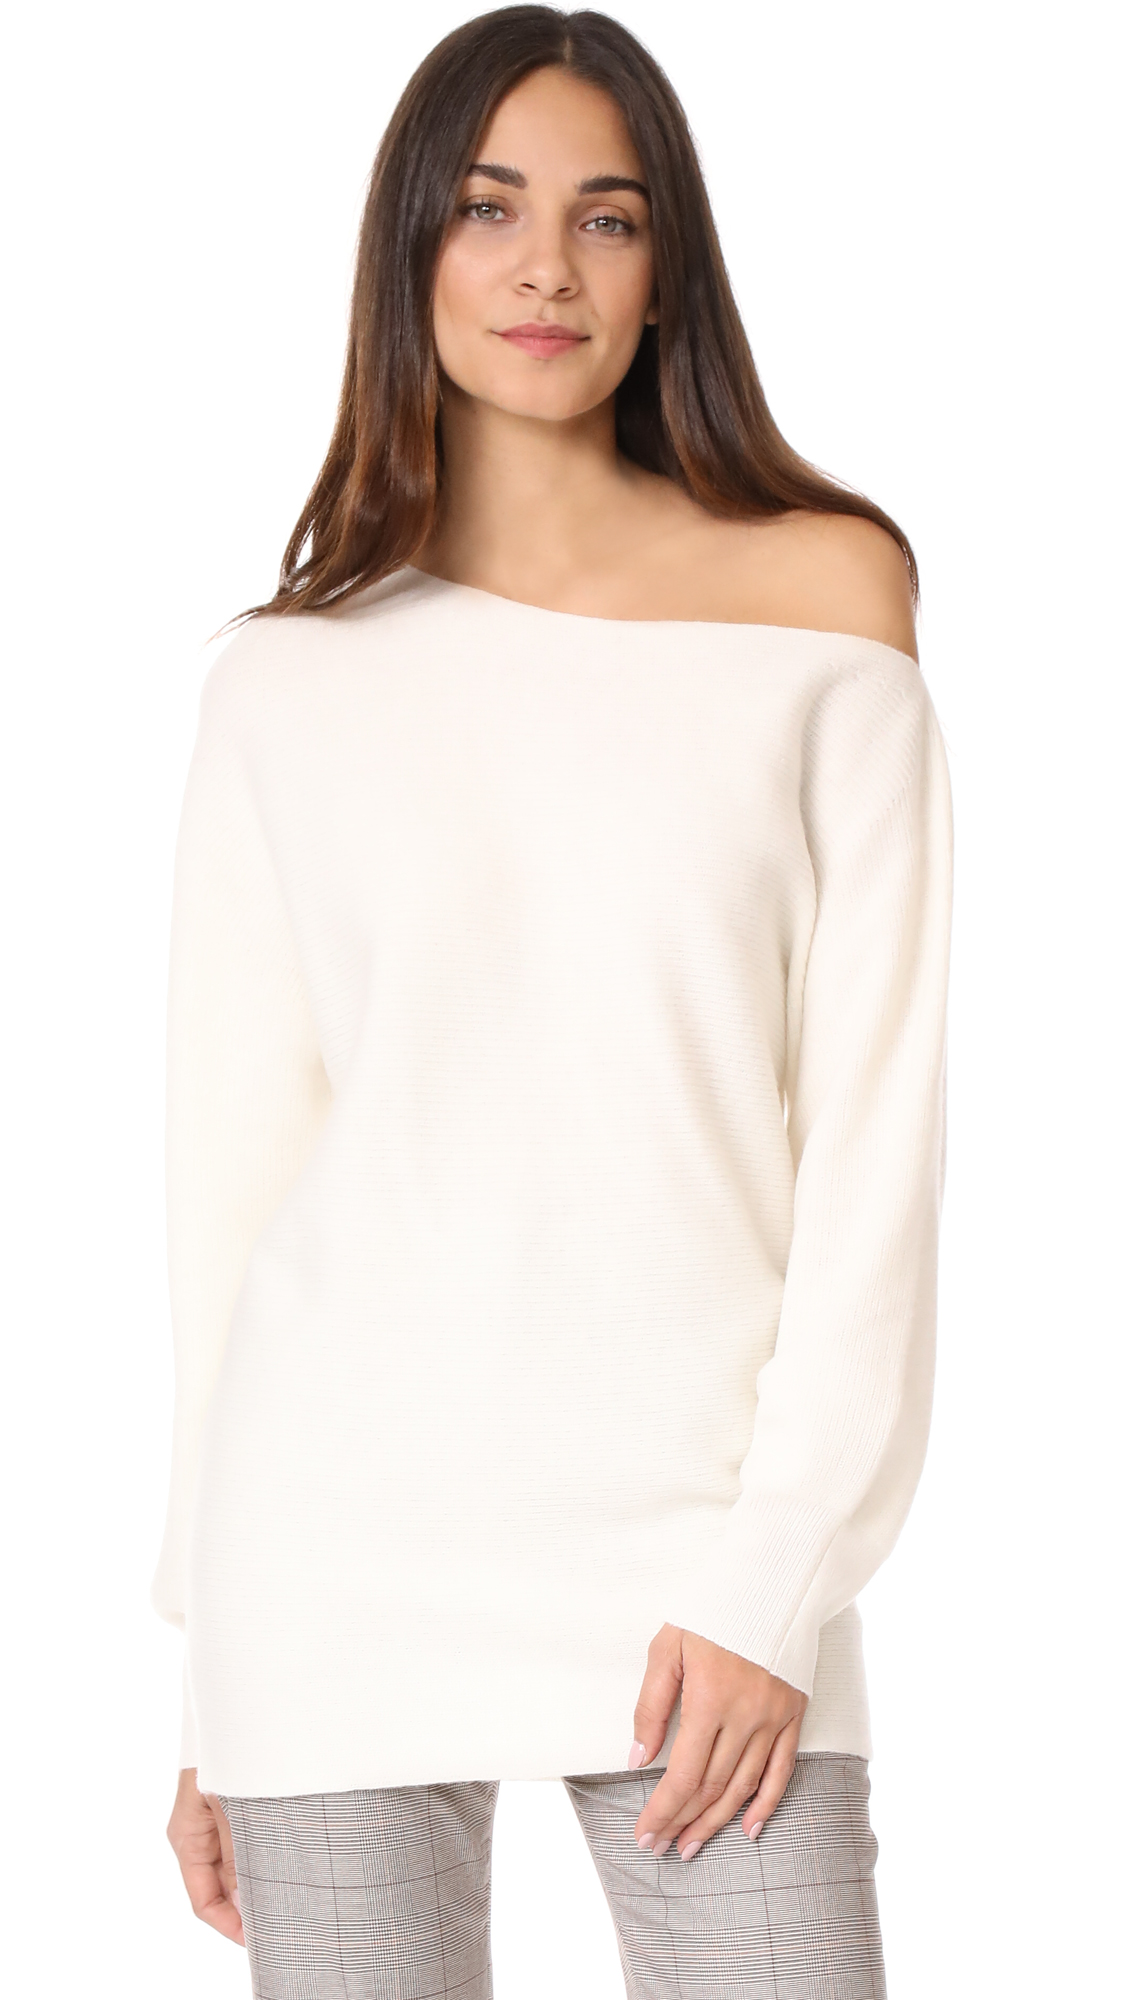 Theory One Shoulder Ribbed Sweater - White